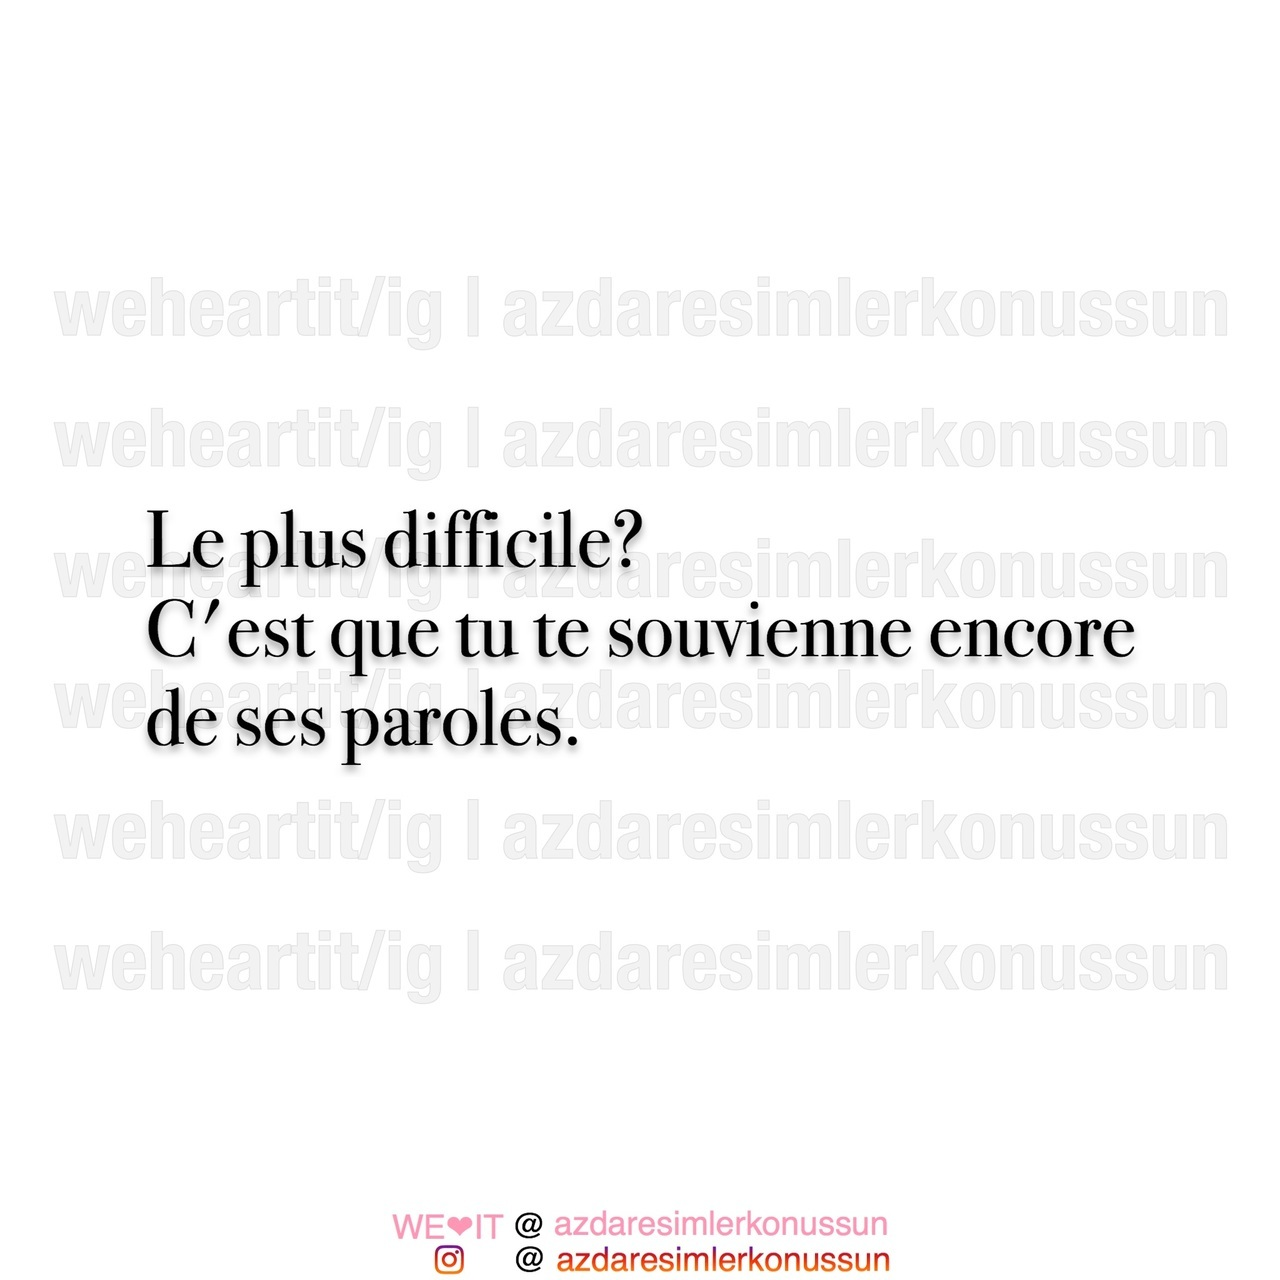 544 images about paroles on We Heart It | See more about french, texte and  citation